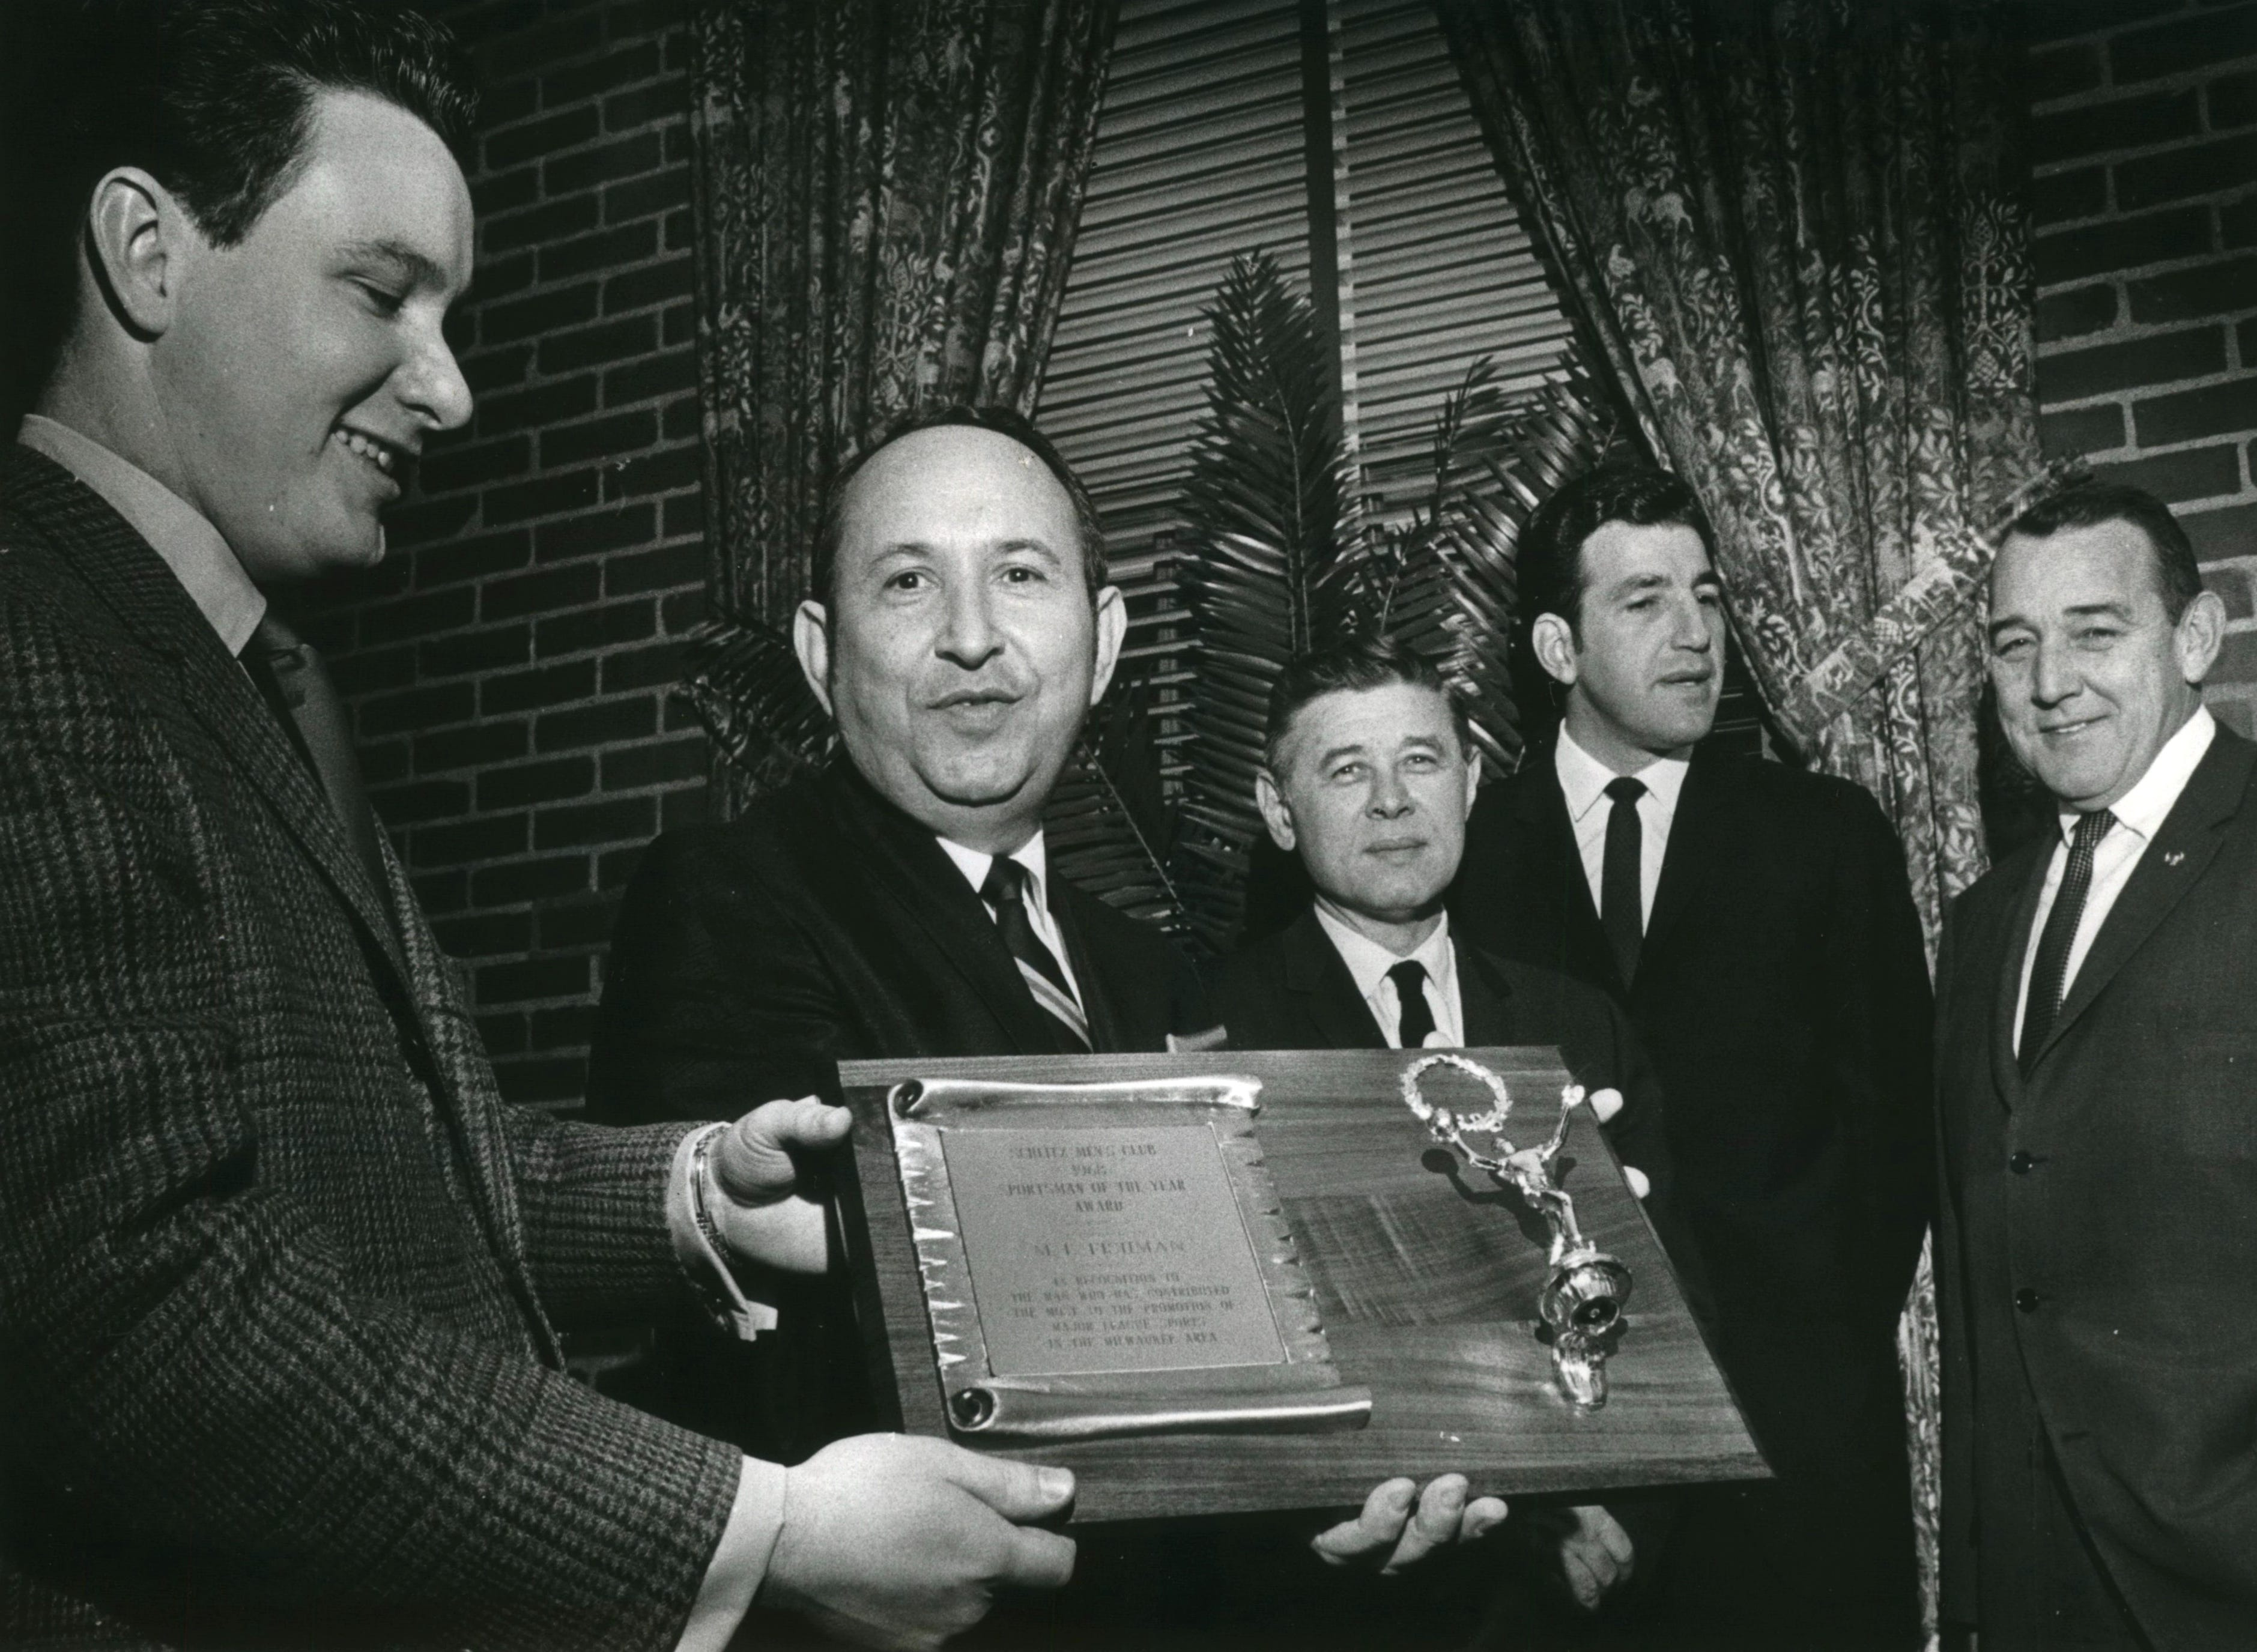 Marvin Fishman, second from left, is honored at the Schlitz clubhouse for his part in bringing professional basketball to Milwaukee.